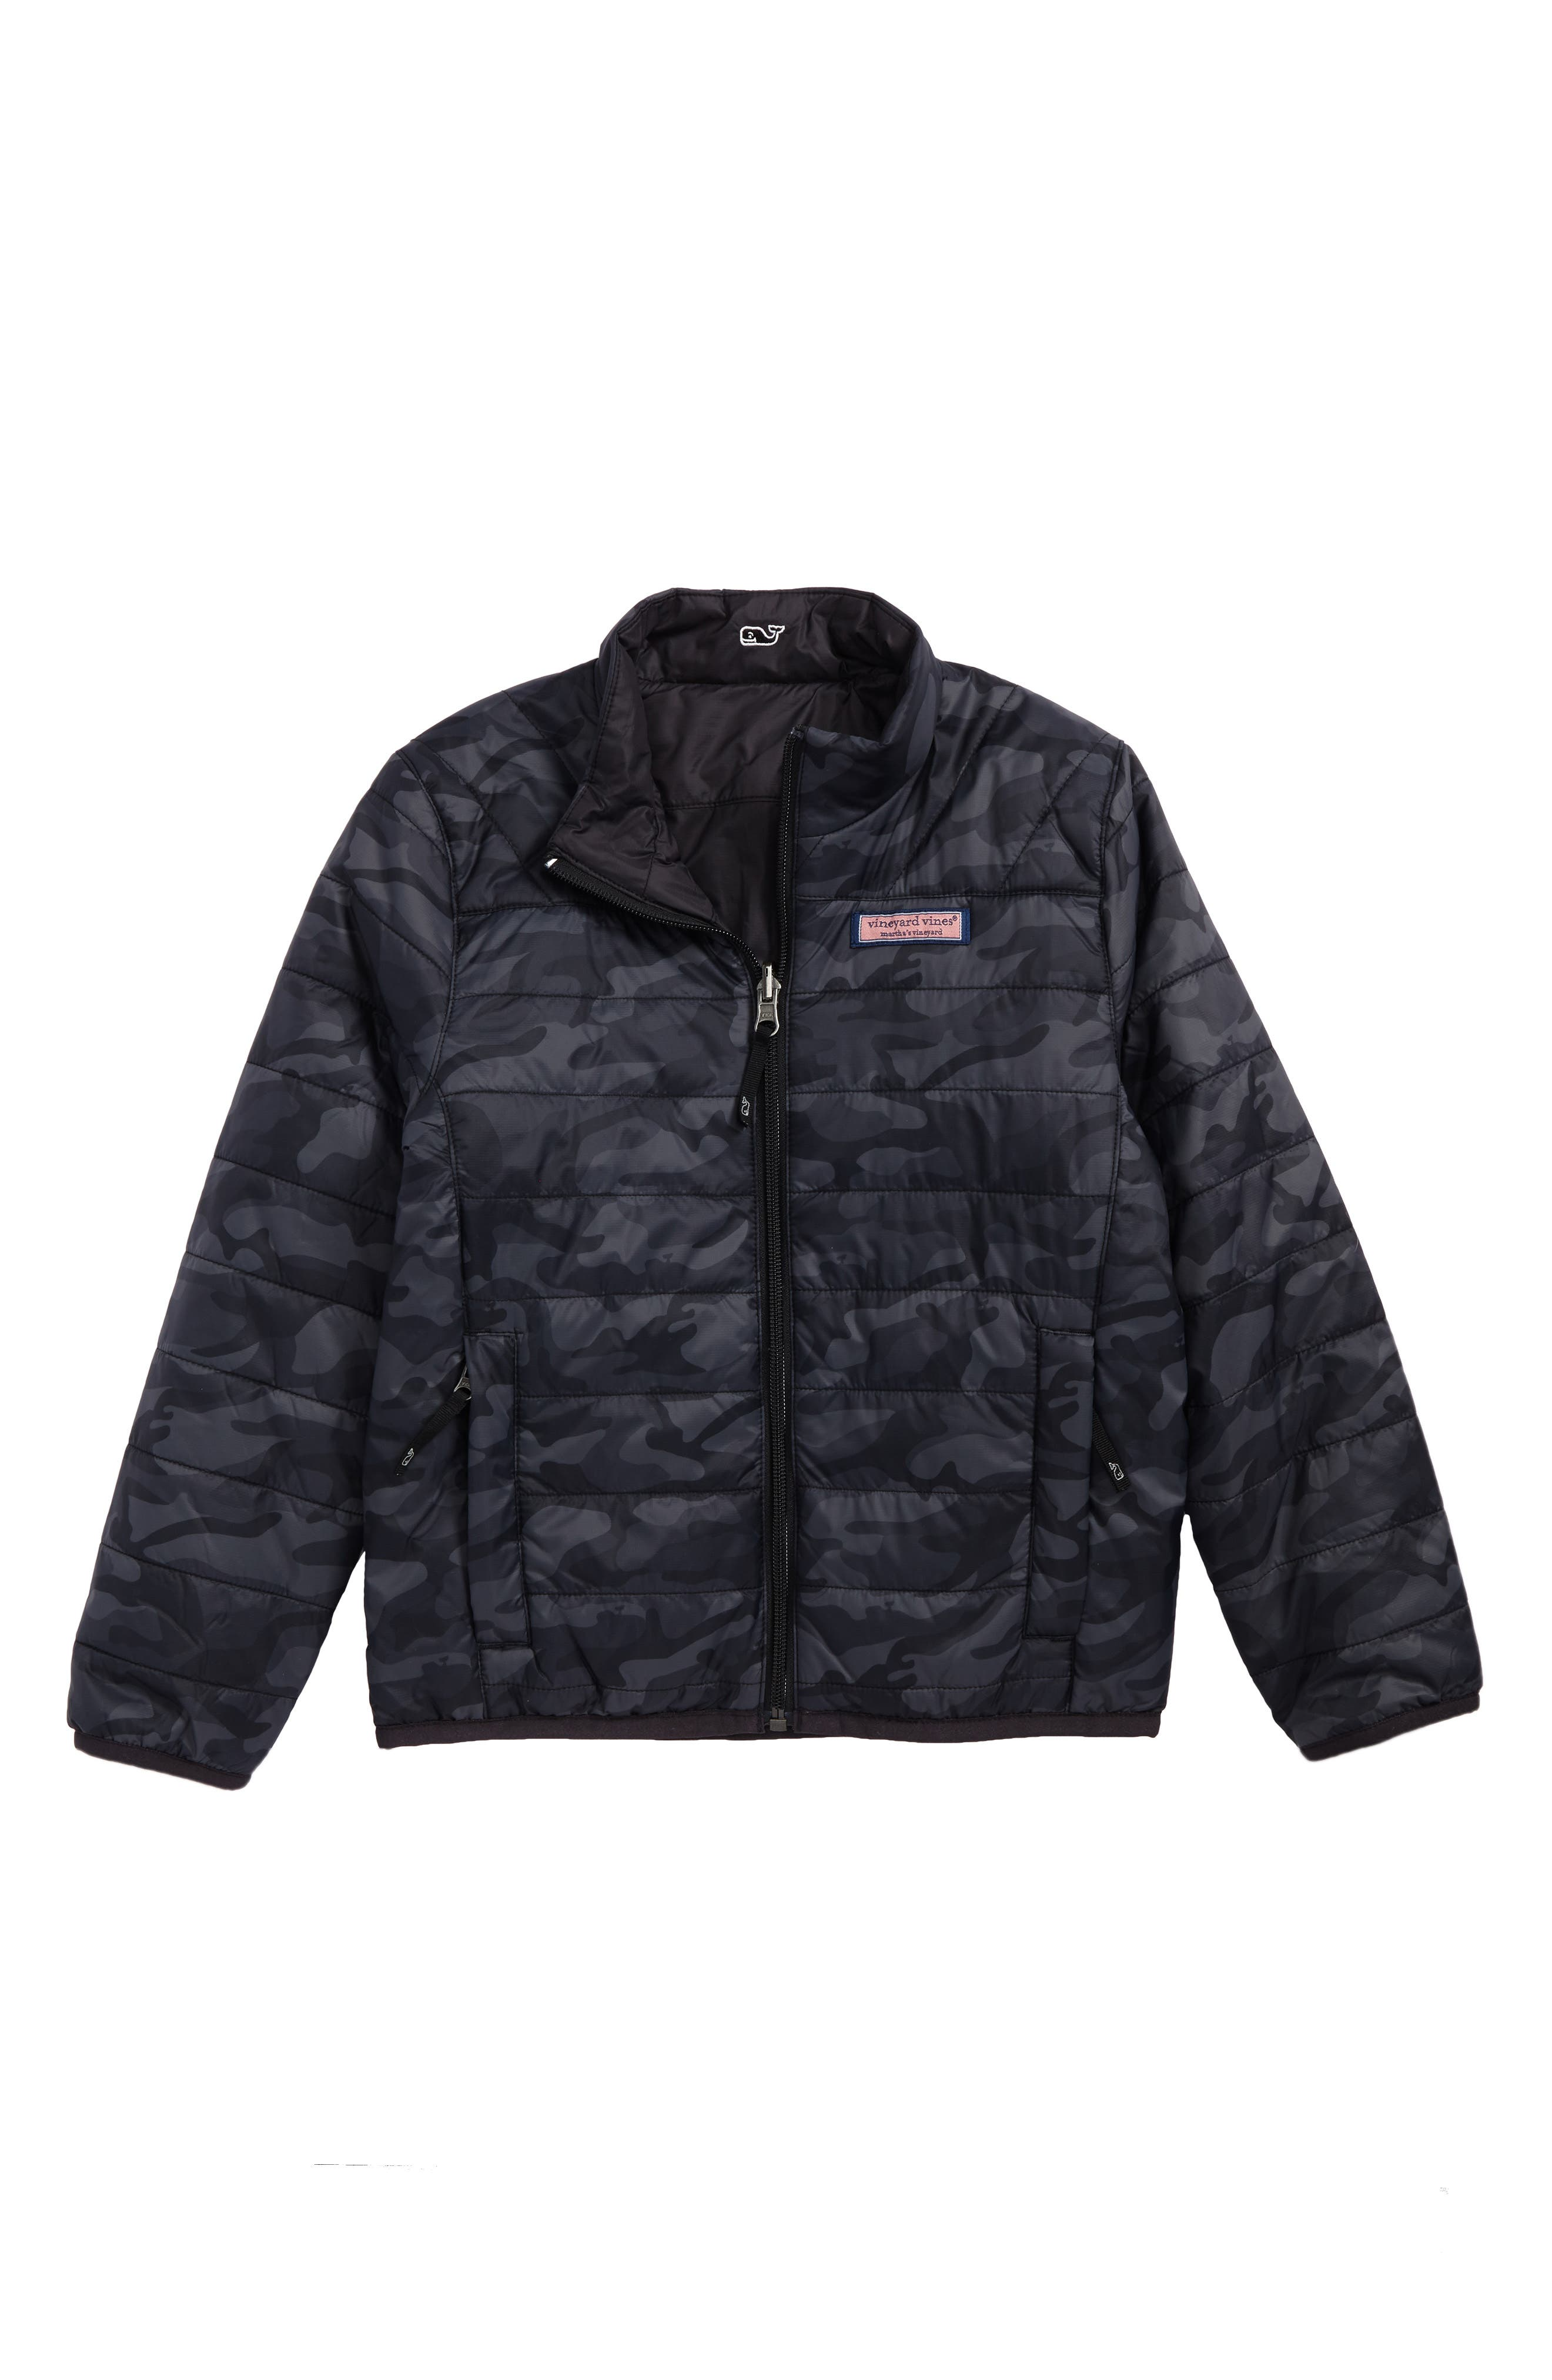 Reversible Mountain Weekend Jacket,                         Main,                         color, Jet Black